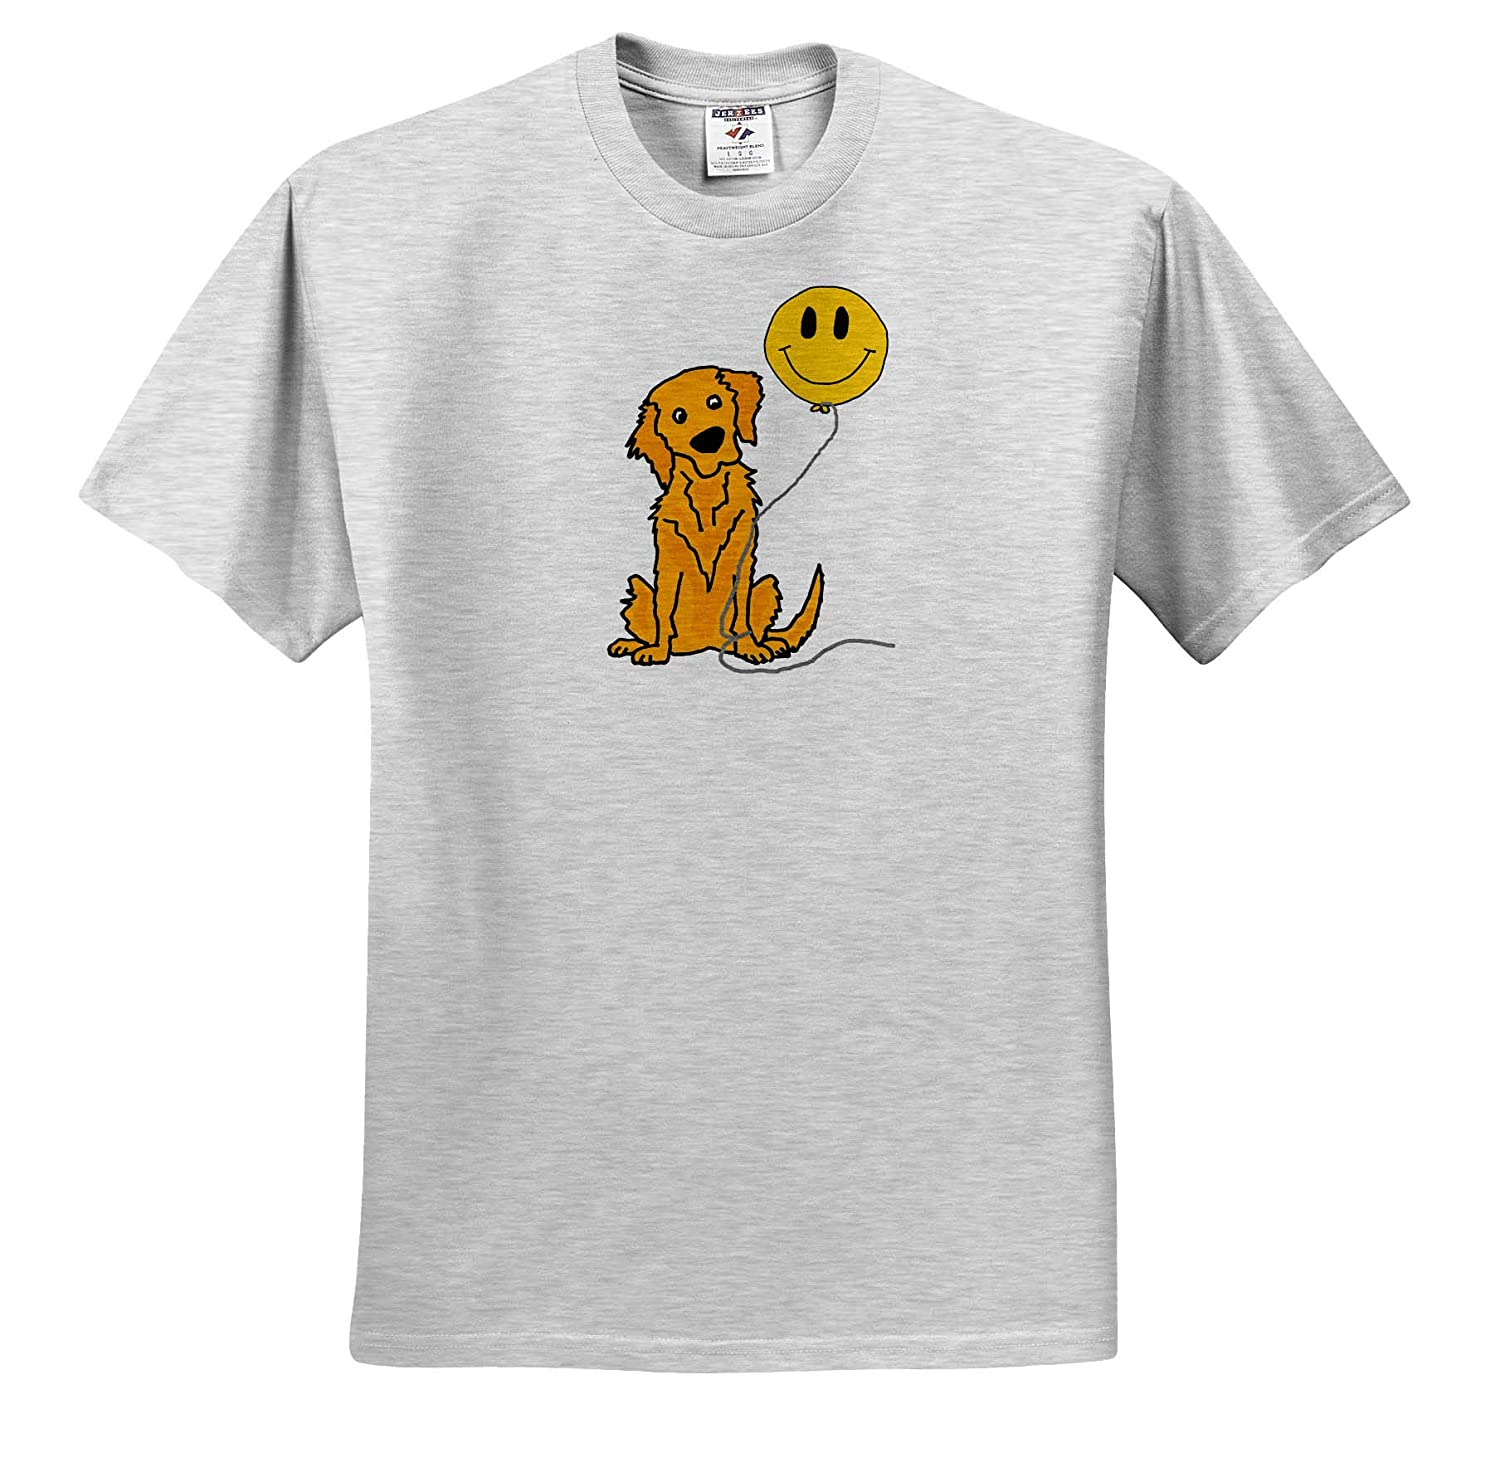 3dRose All Smiles Art Cute Funny Golden Retriever Puppy Dog with Smiley Face Pets T-Shirts